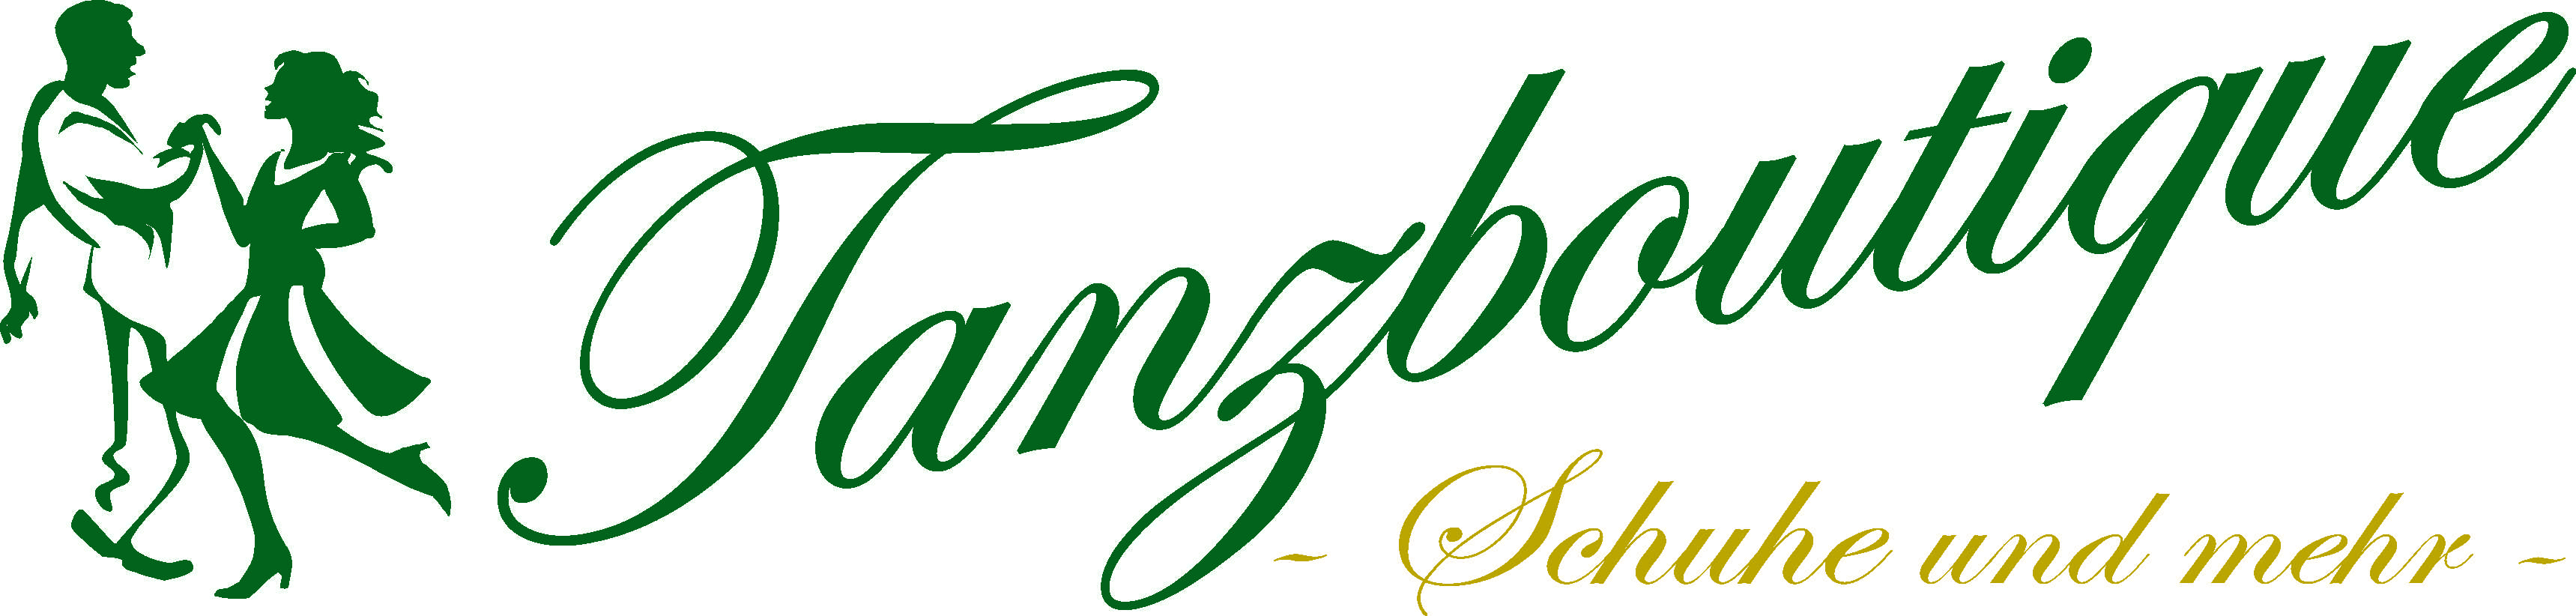 Logo_Tanzboutique